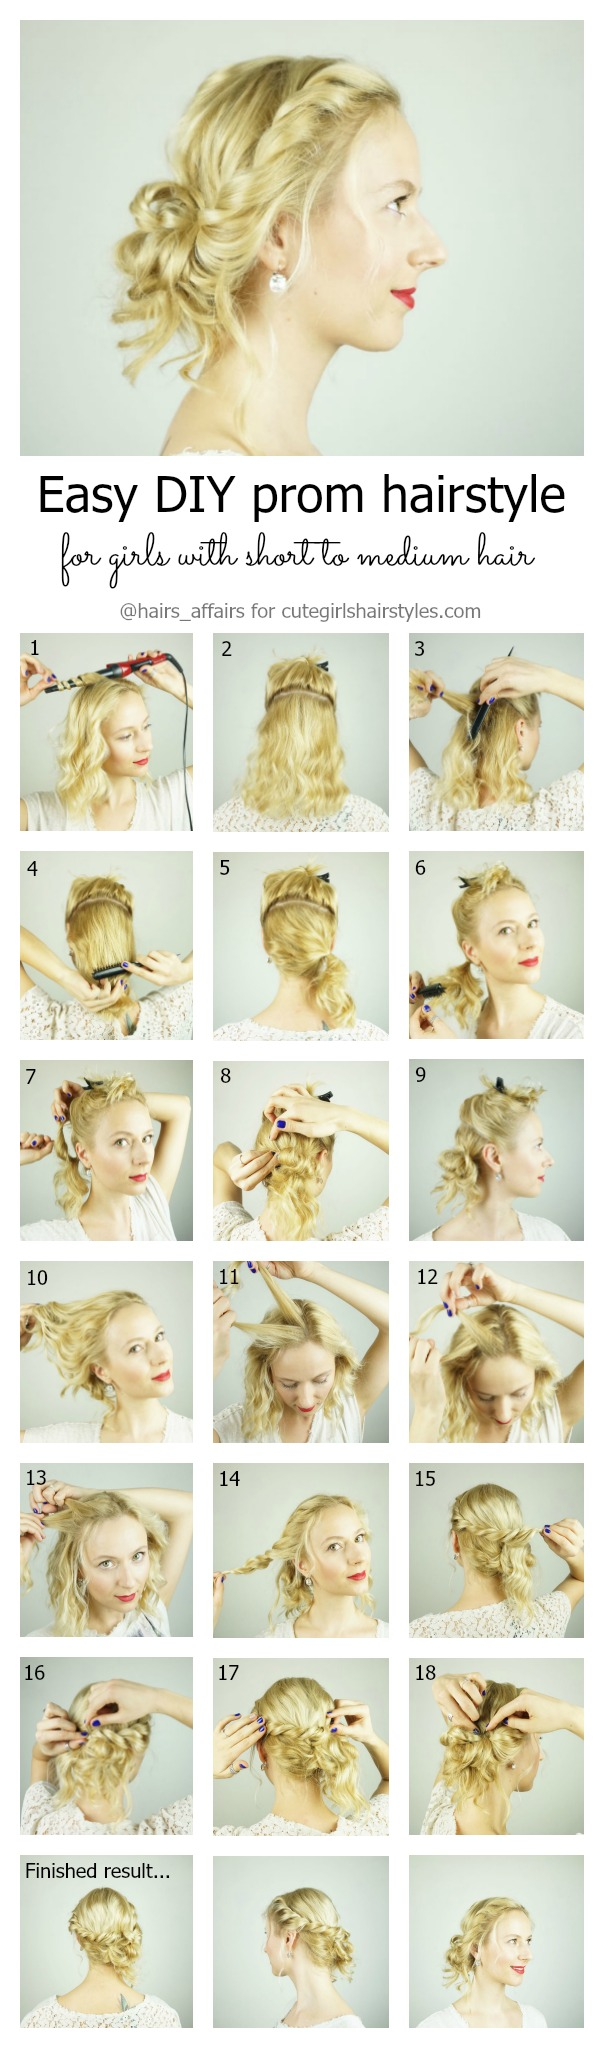 Easy diy prom hairstyle for girls with short to medium hair with prom hairstyles solutioingenieria Choice Image